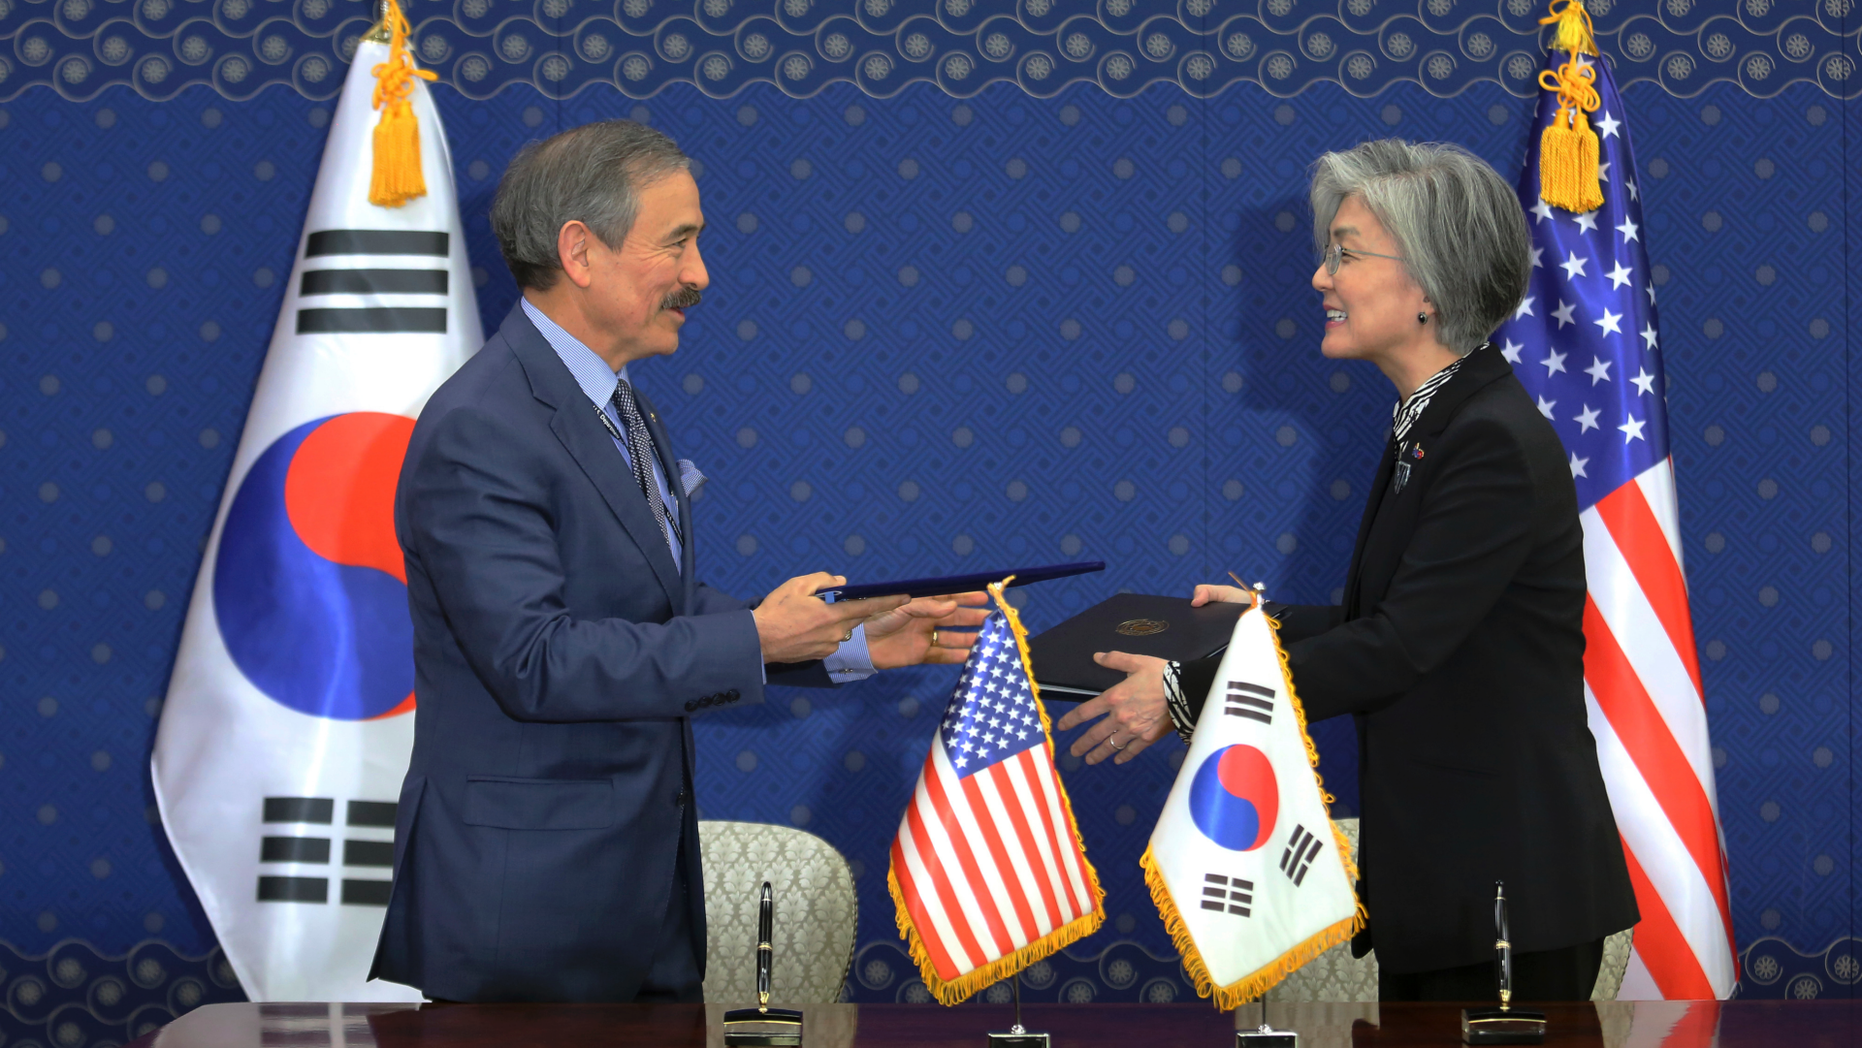 South Korean Foreign Minister Kang Kyung-wha, right, and U.S. Ambassador to South Korea Harry Harris exchange documents at Foreign Ministry in Seoul, South Korea, Friday, March 8, 2019. South Korea and the United States have formally signed a deal that increases Seoul's financial contribution for the deployment of U.S. troops in the Asian country. (AP Photo/Ahn Young-joon, Pool)